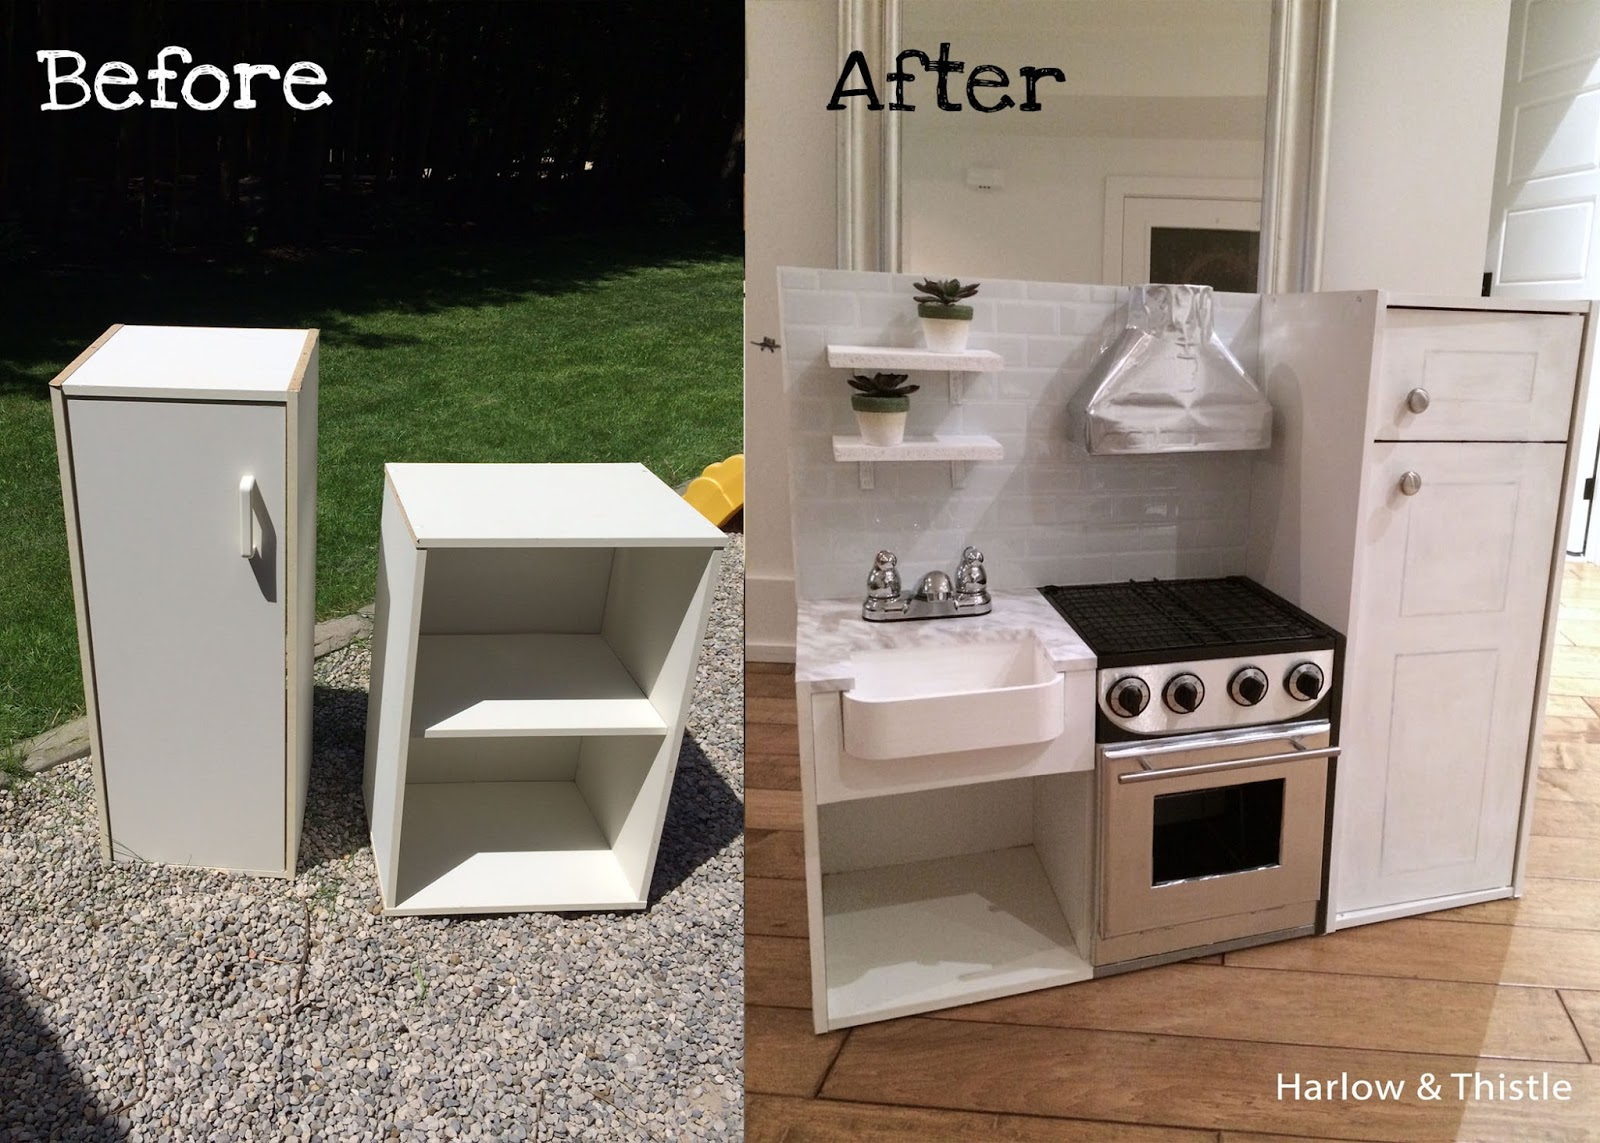 Diy Play Kitchen diy play kitchen | harlow & thistle - home design - lifestyle - diy